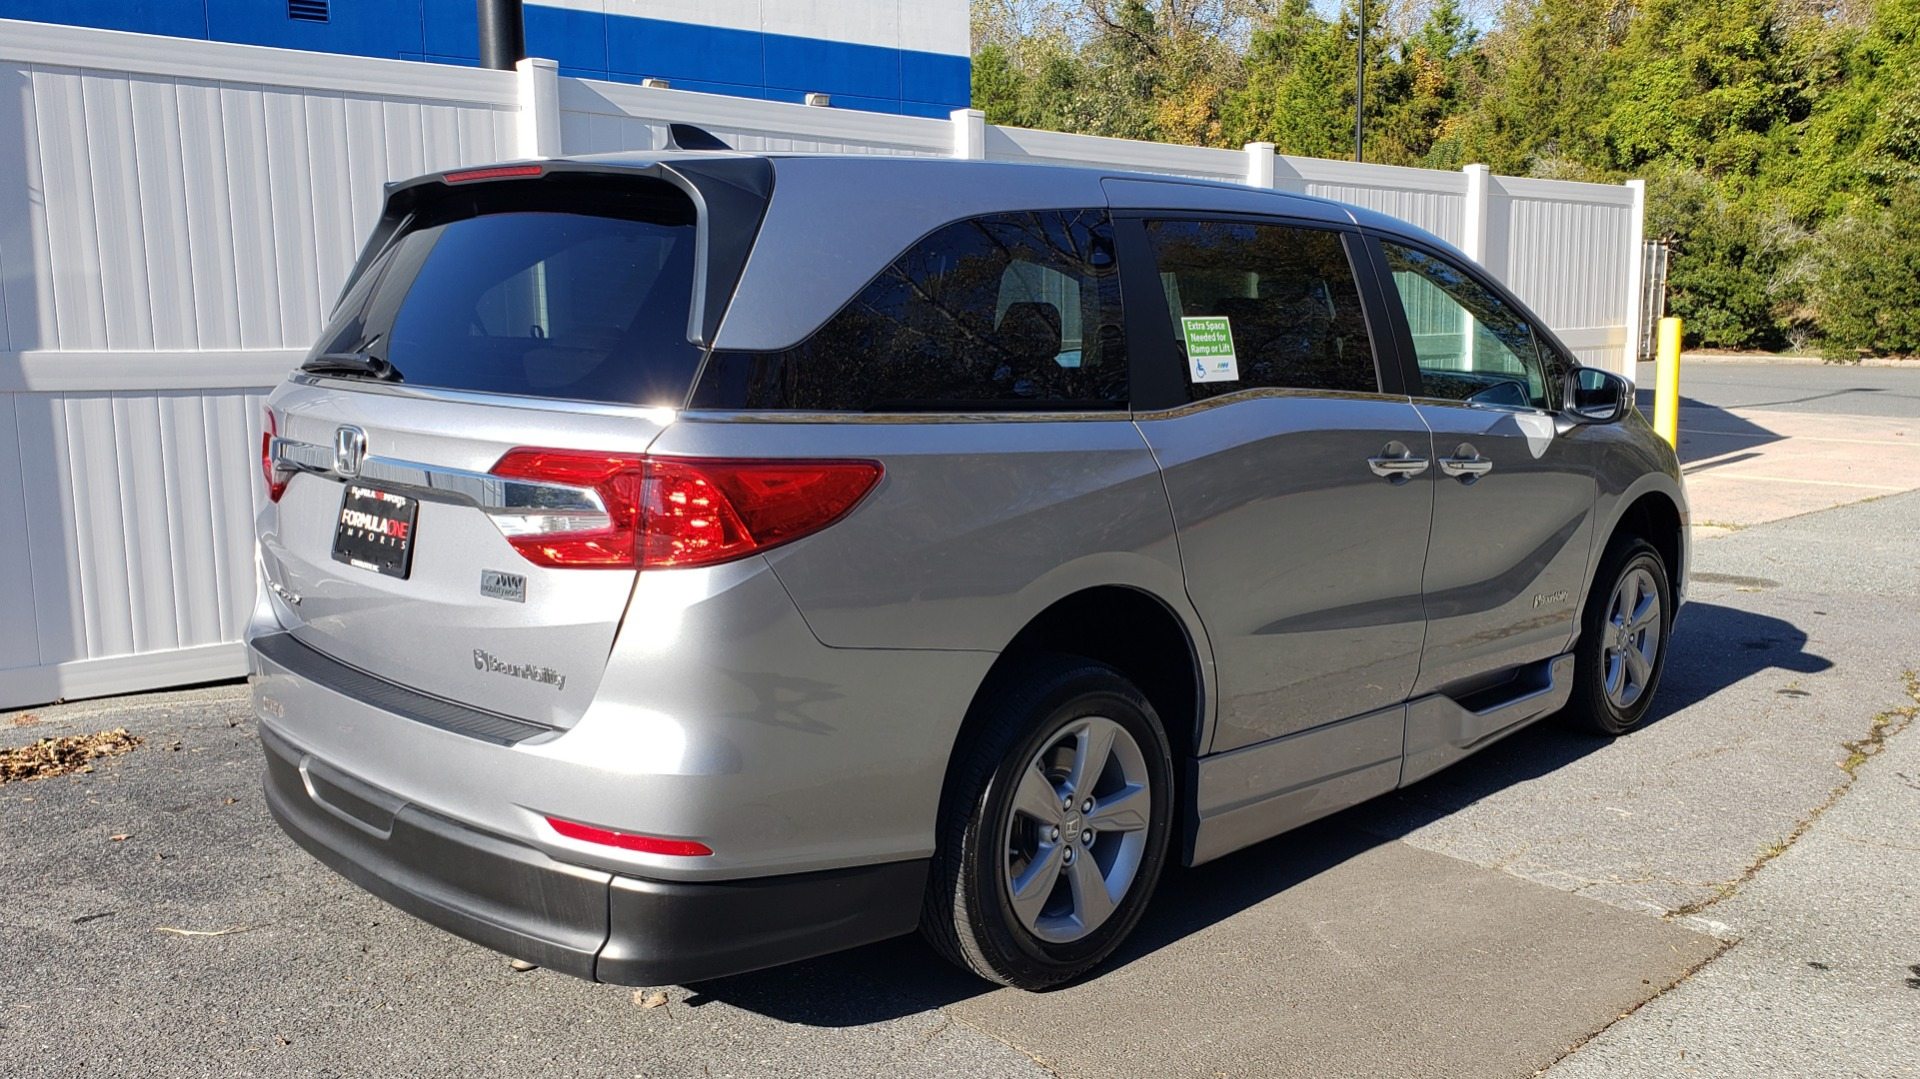 Used 2019 Honda ODYSSEY EX-L BRAUNABILITY / NAV / RES / LKA / BLUE-RAY / SUNROOF / REARVIEW for sale Sold at Formula Imports in Charlotte NC 28227 6